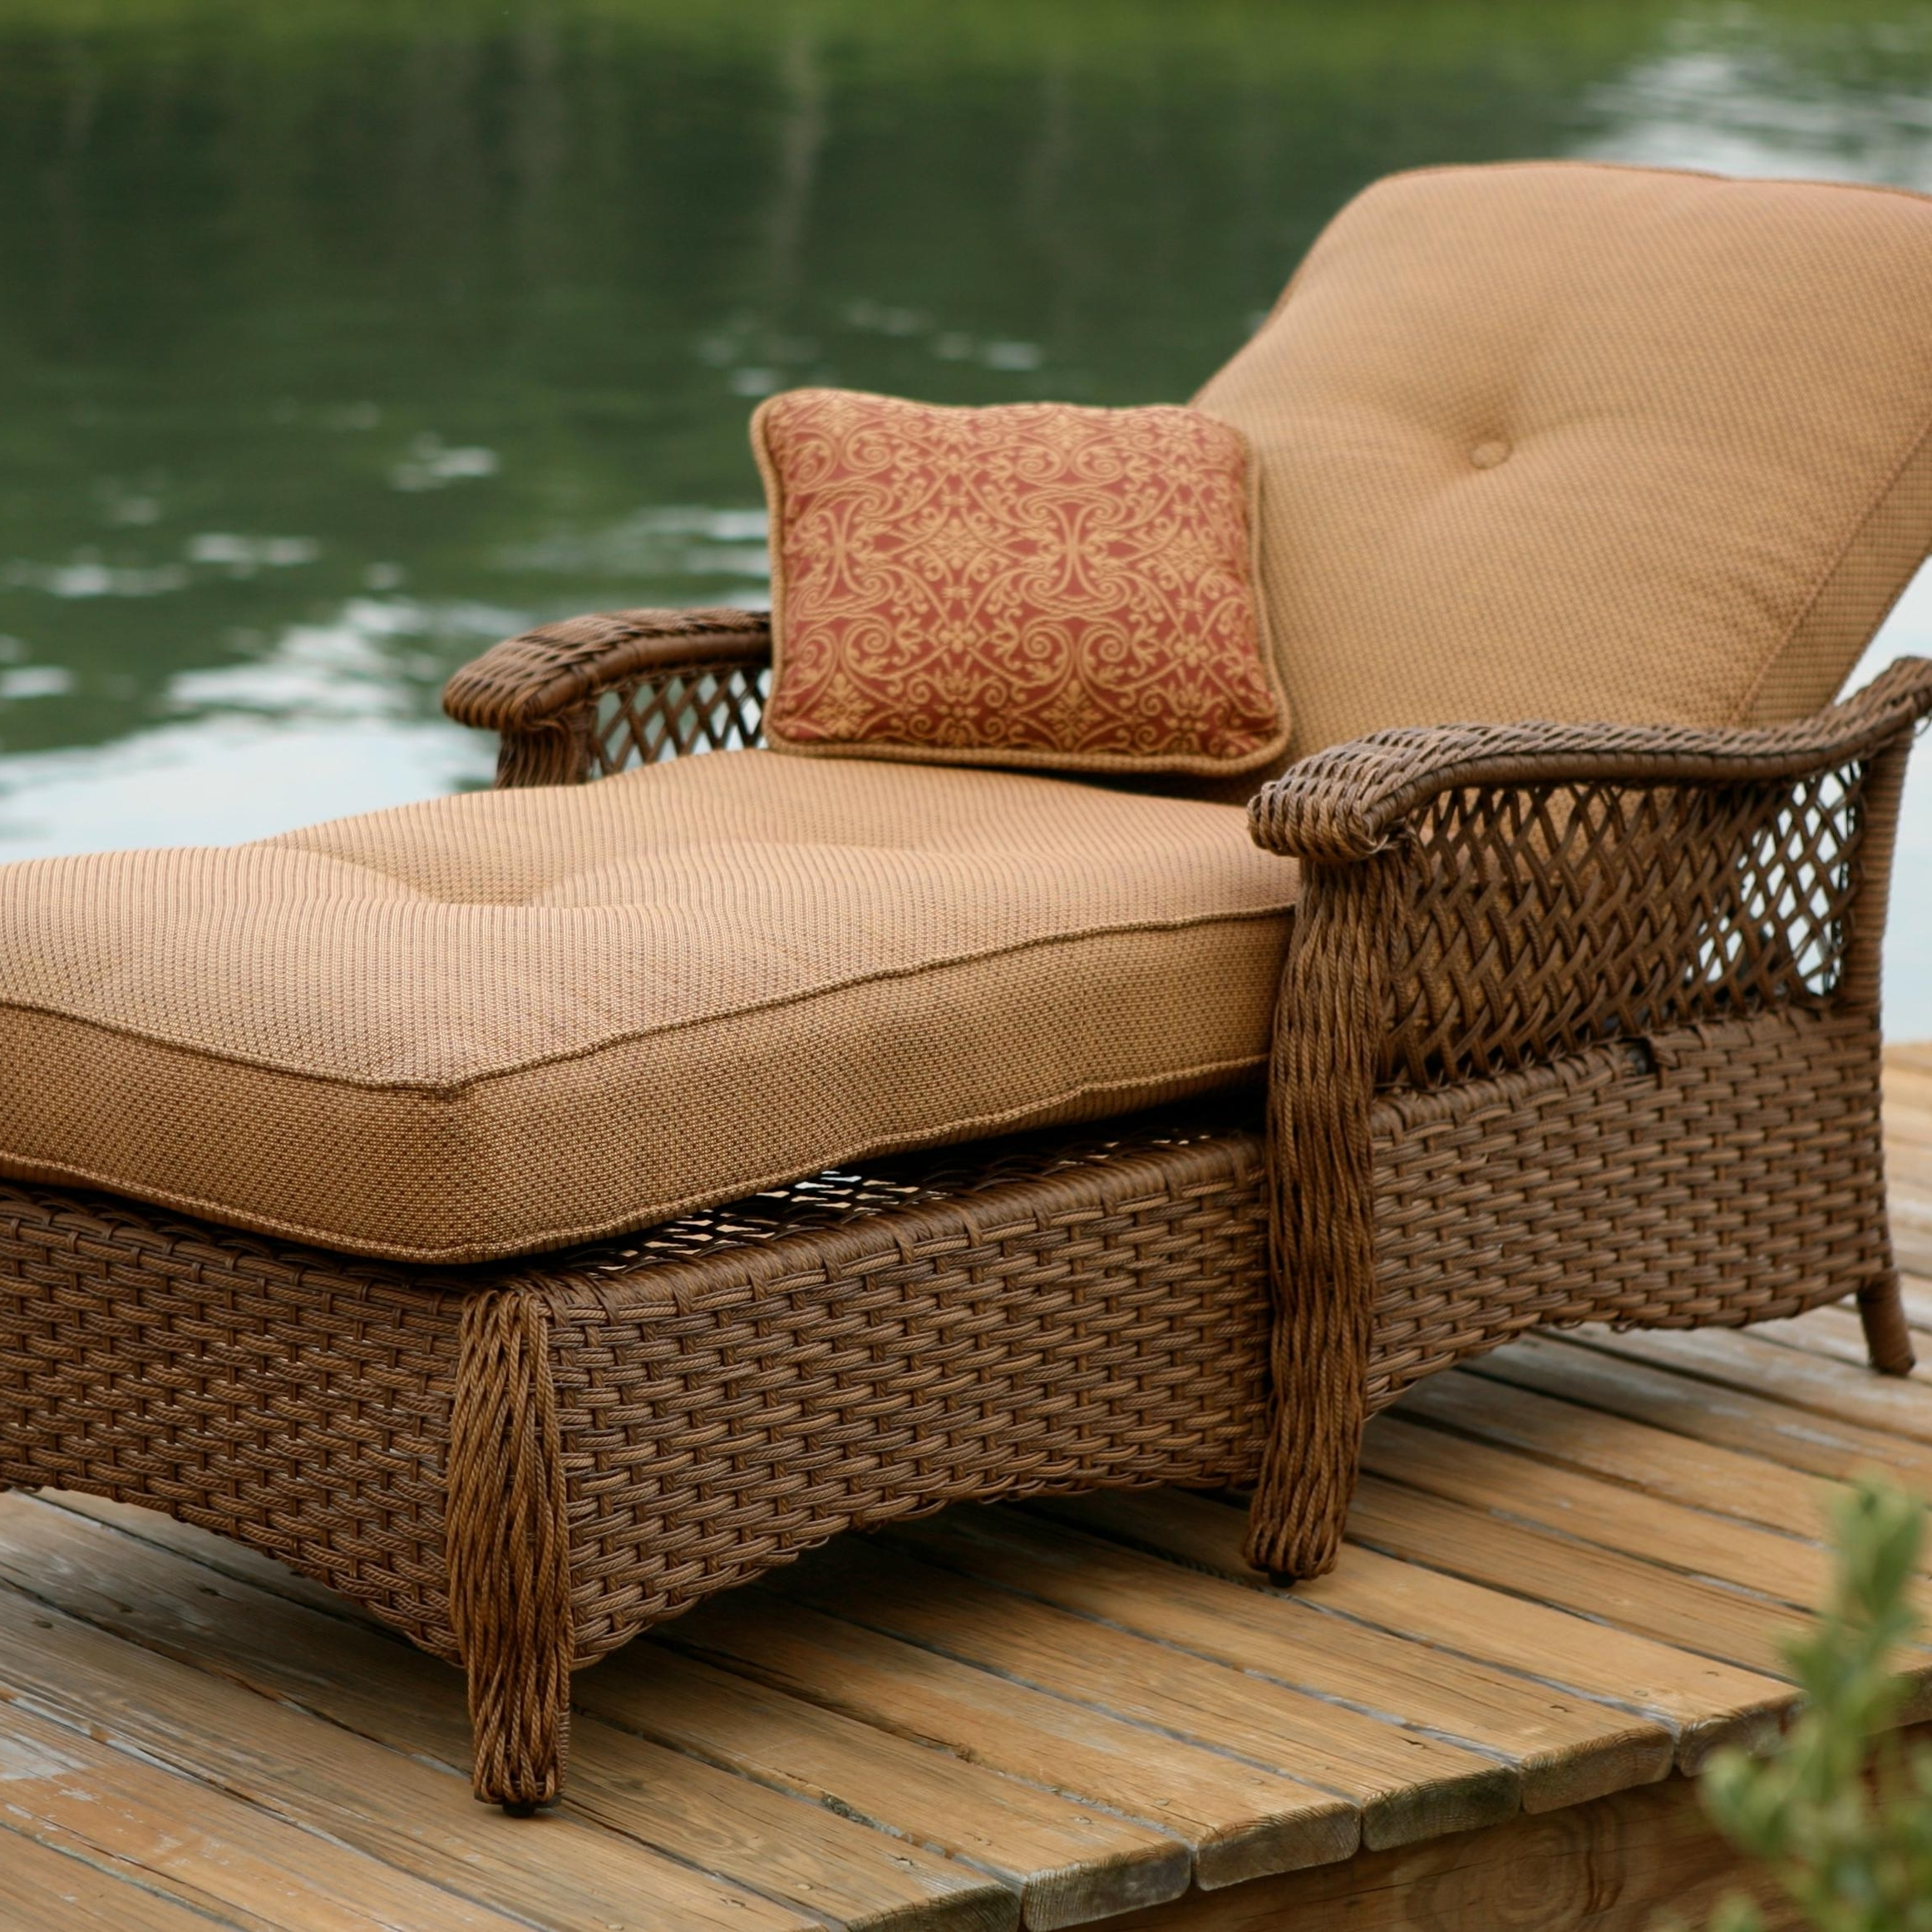 Woven Chaise Lounge Chair • Lounge Chairs Ideas With Most Popular Wicker Chaise Lounge Chairs For Outdoor (View 15 of 15)